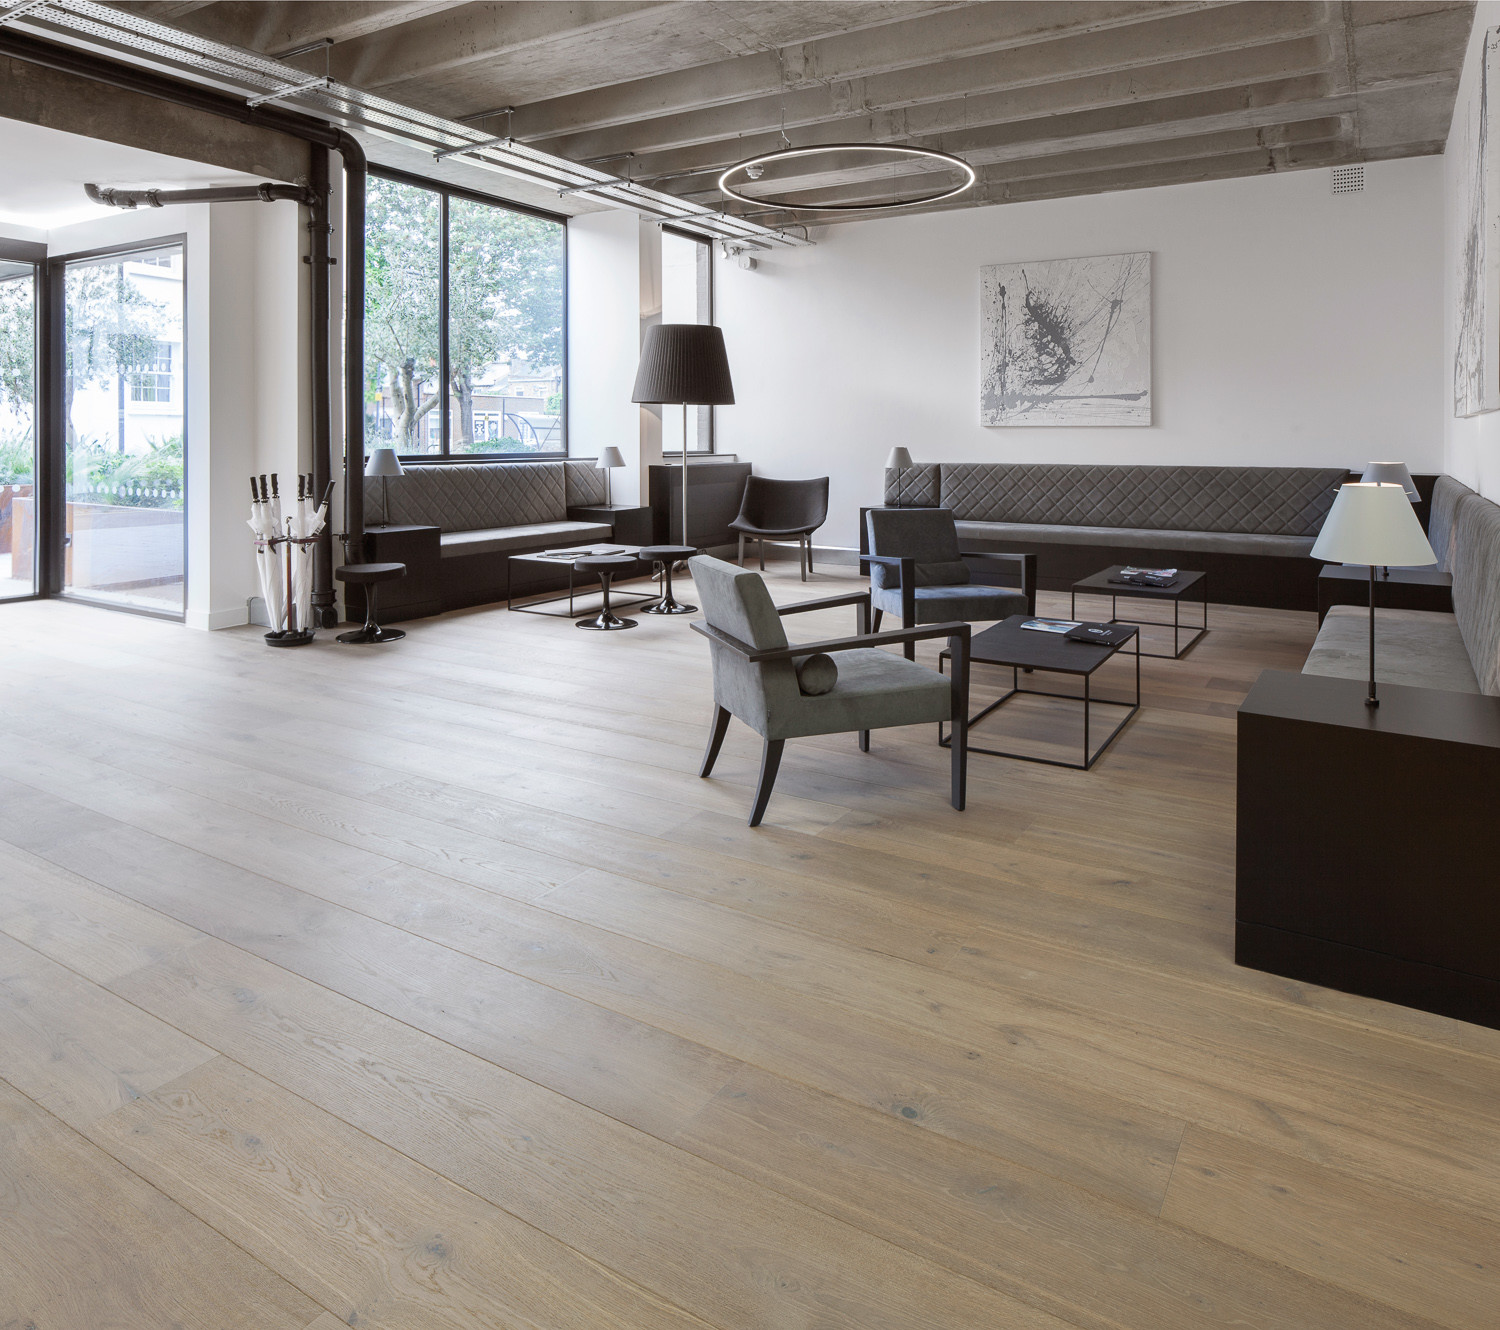 benefits distressed hardwood flooring of blog archives the new reclaimed flooring companythe new with regard to the report indicated that 82 of workers who were employed in places with eight or more wood surfaces had higher personal productivity mood concentration